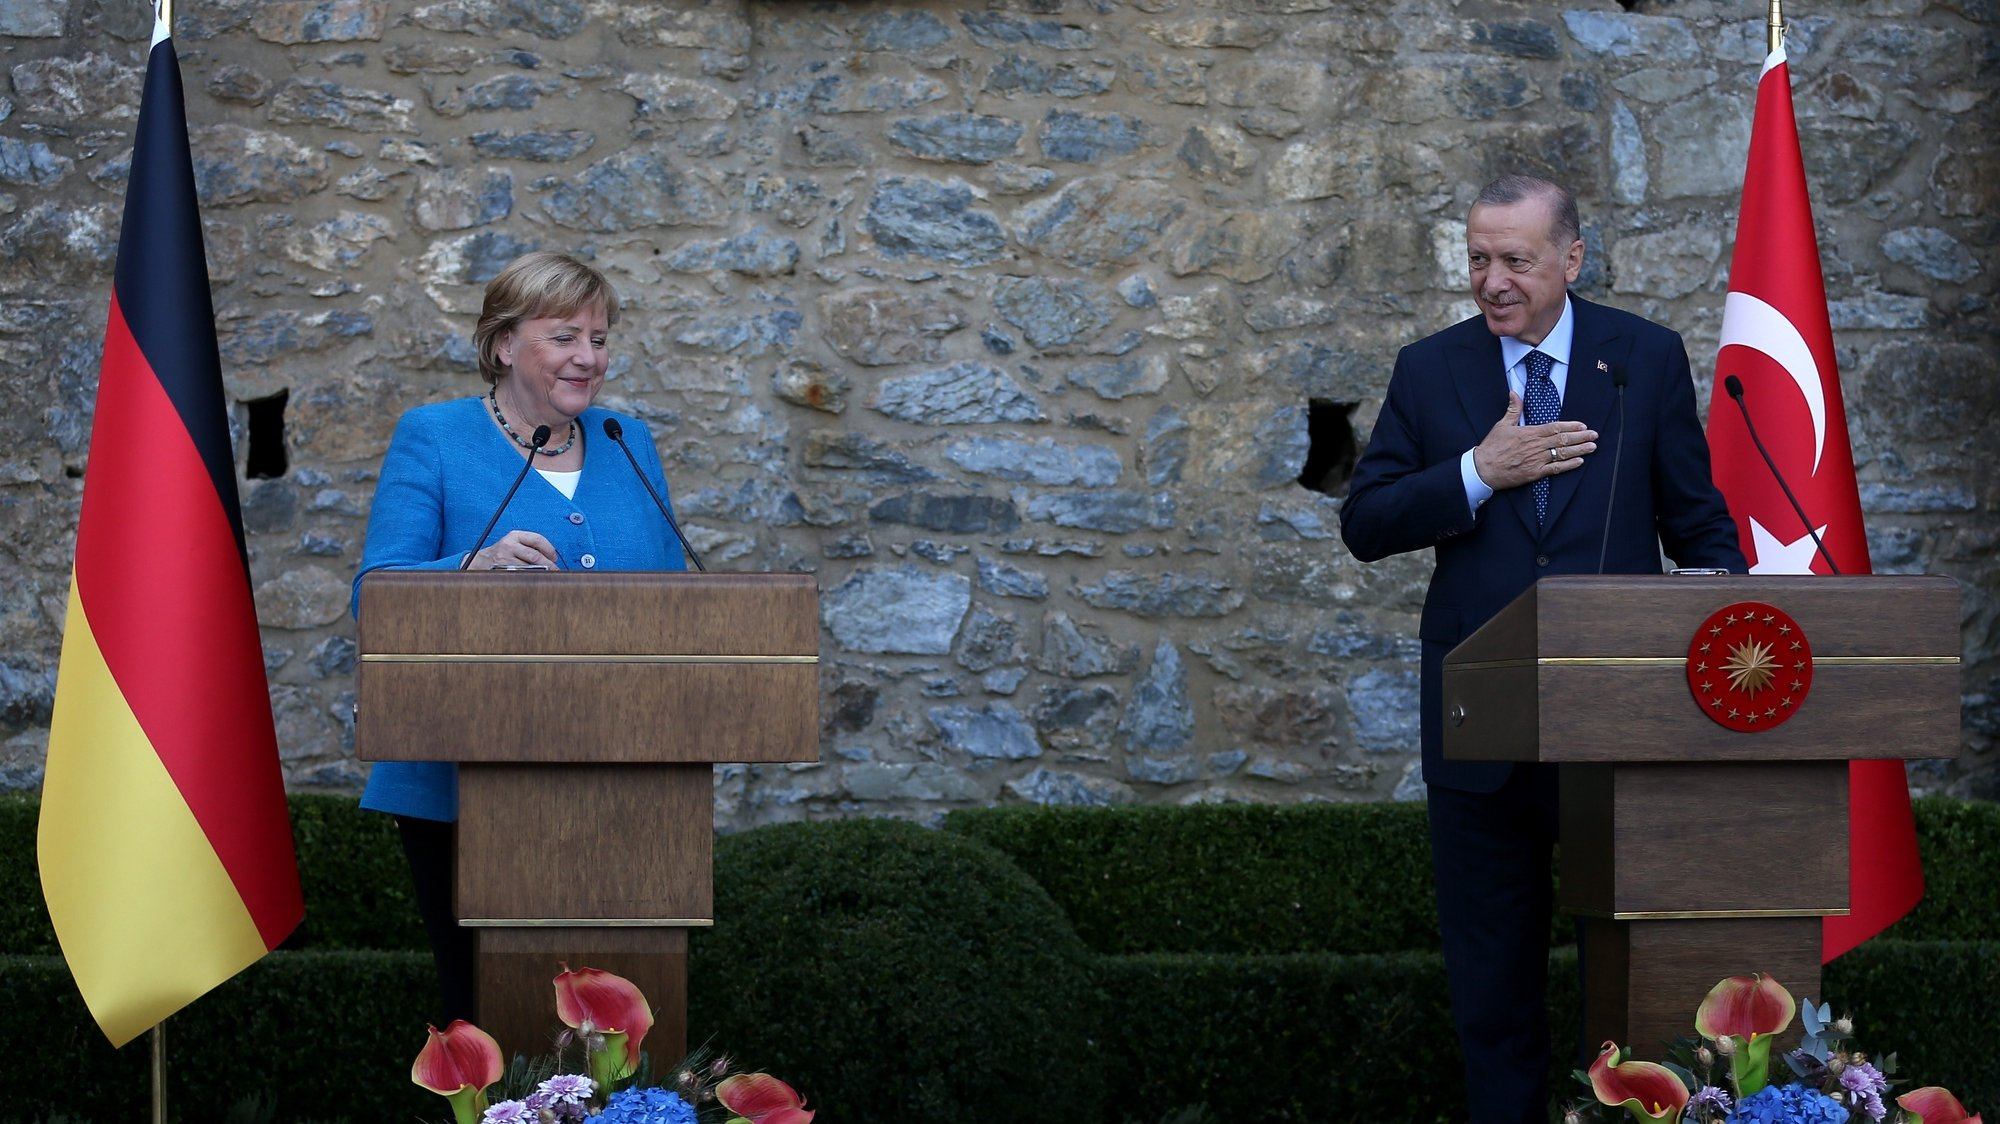 epa09526912 Turkish President Recep Tayyip Erdogan (R) and German Chancellor Angela Merkel (L) speak during a press conference after thier meeting at the Huber mansion in Istanbul, Turkey, 16 October 2021. The German Chancellor is currently on a farewell tour of various countries.  EPA/ERDEM SAHIN